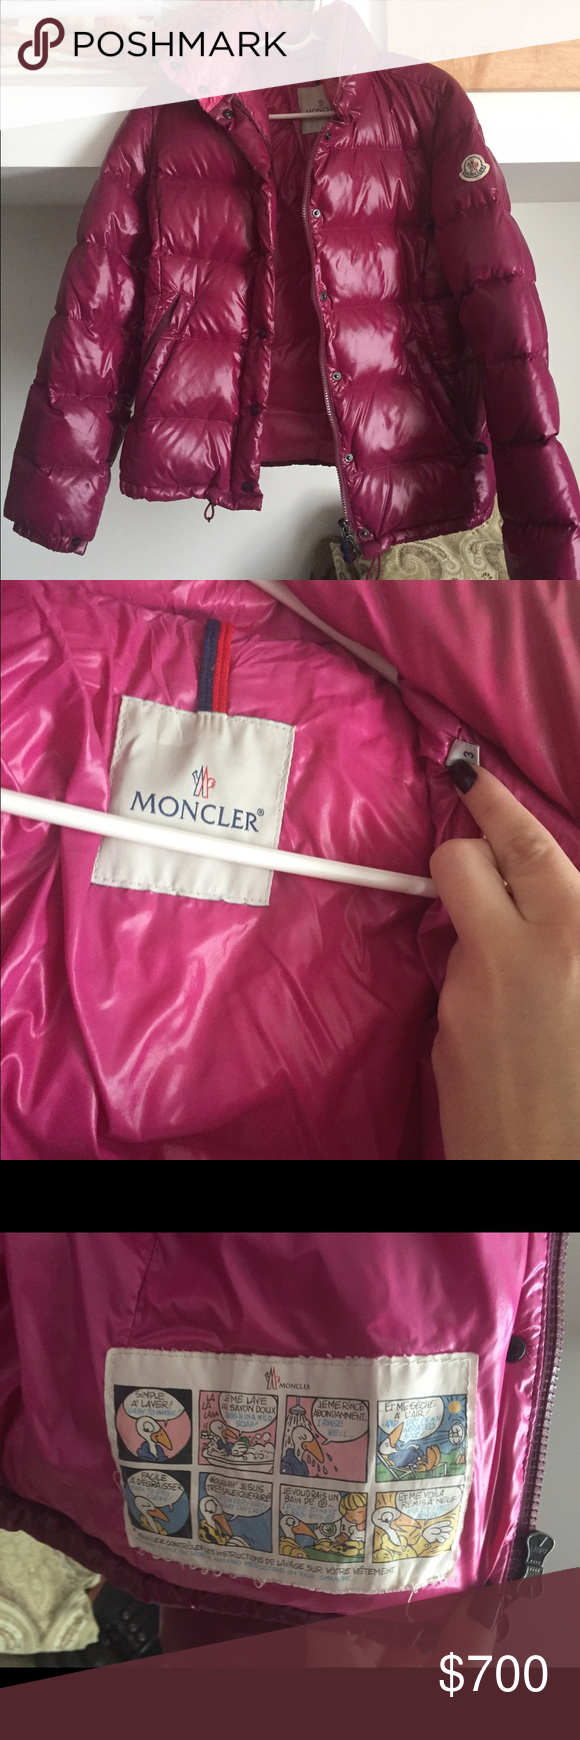 Authentic moncler winter jacket! Size 3, used moncler jacket but in great shape. The color is beautiful and very warm! Will sell lower on other website Moncler Jackets & Coats Puffers